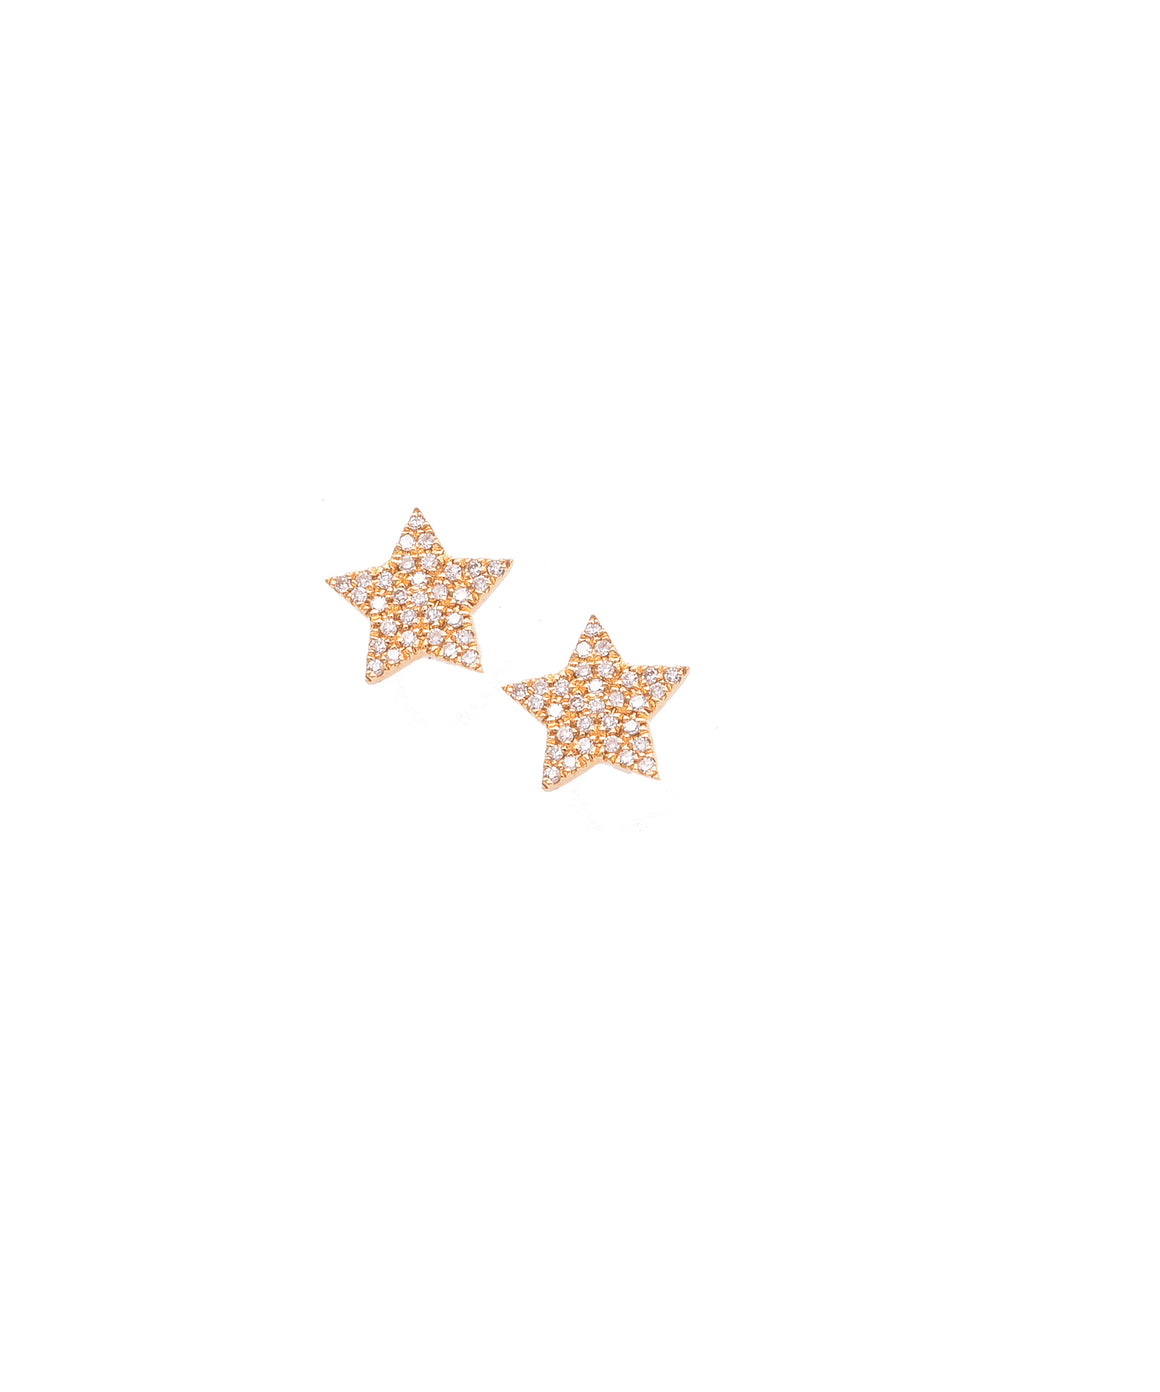 Tiny star sud earrings - Lesley Ann Jewels